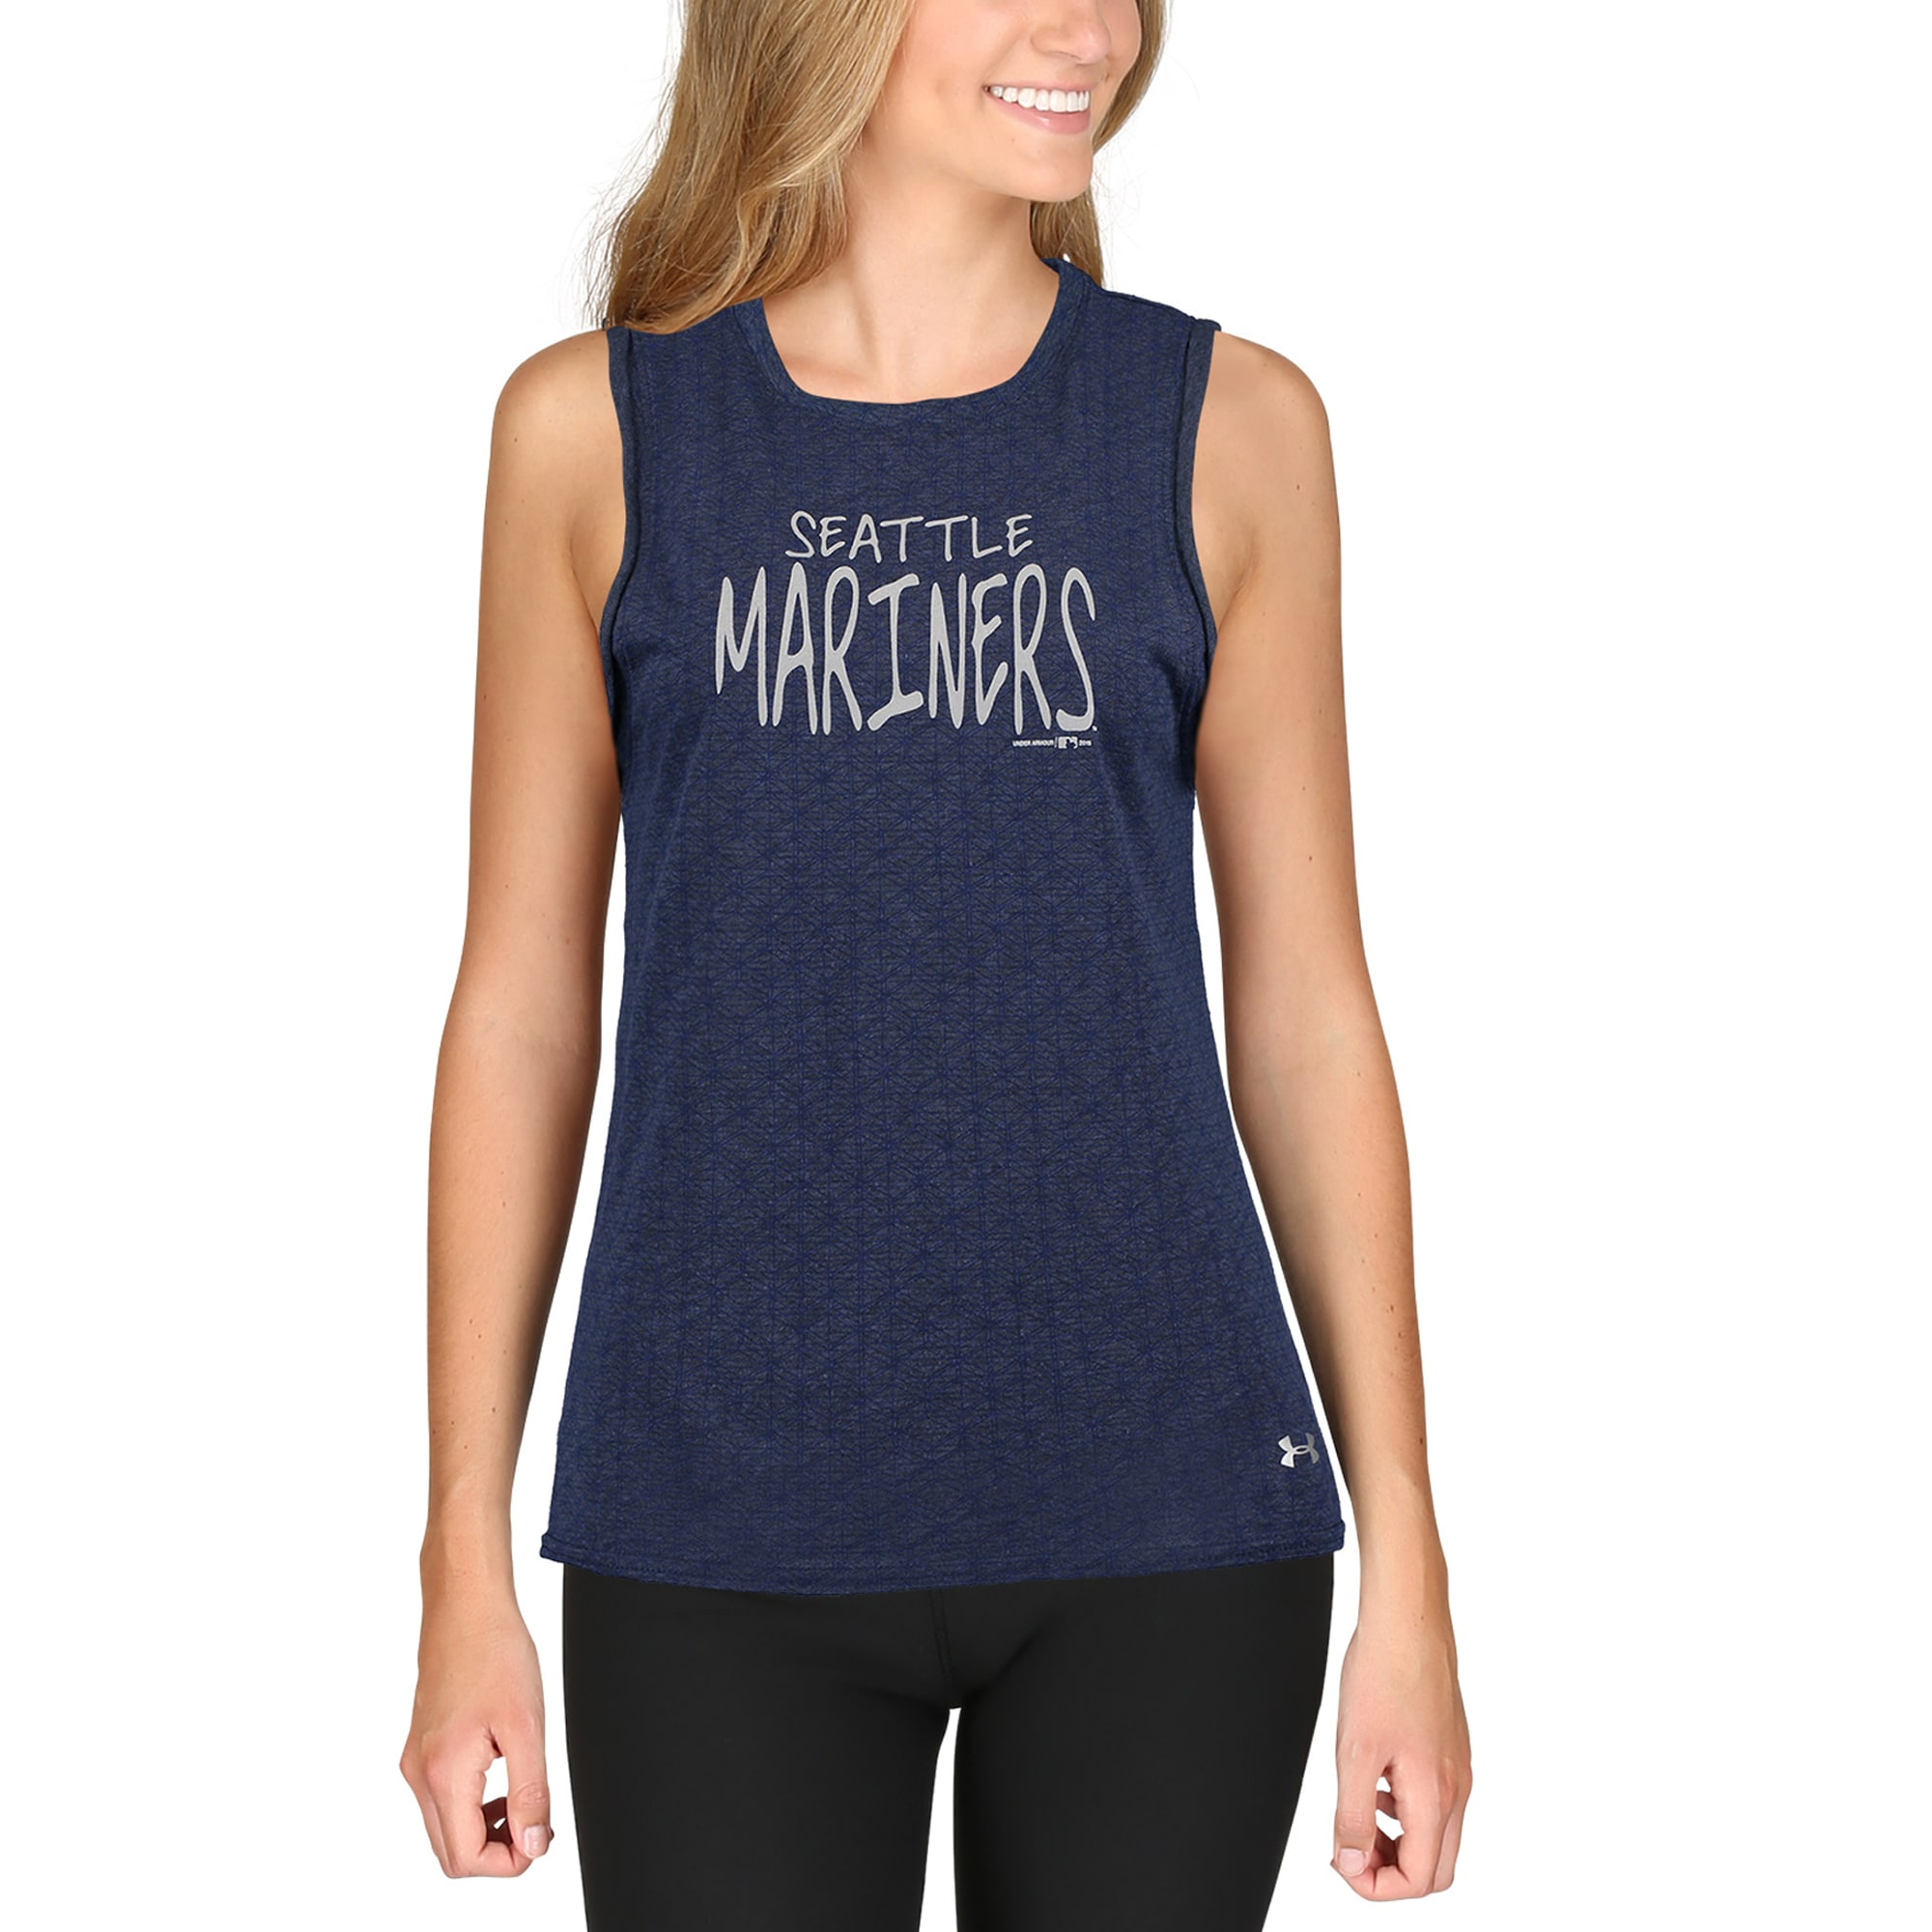 Seattle Mariners Under Armour Women's Muscle Performance Tank Top - Navy